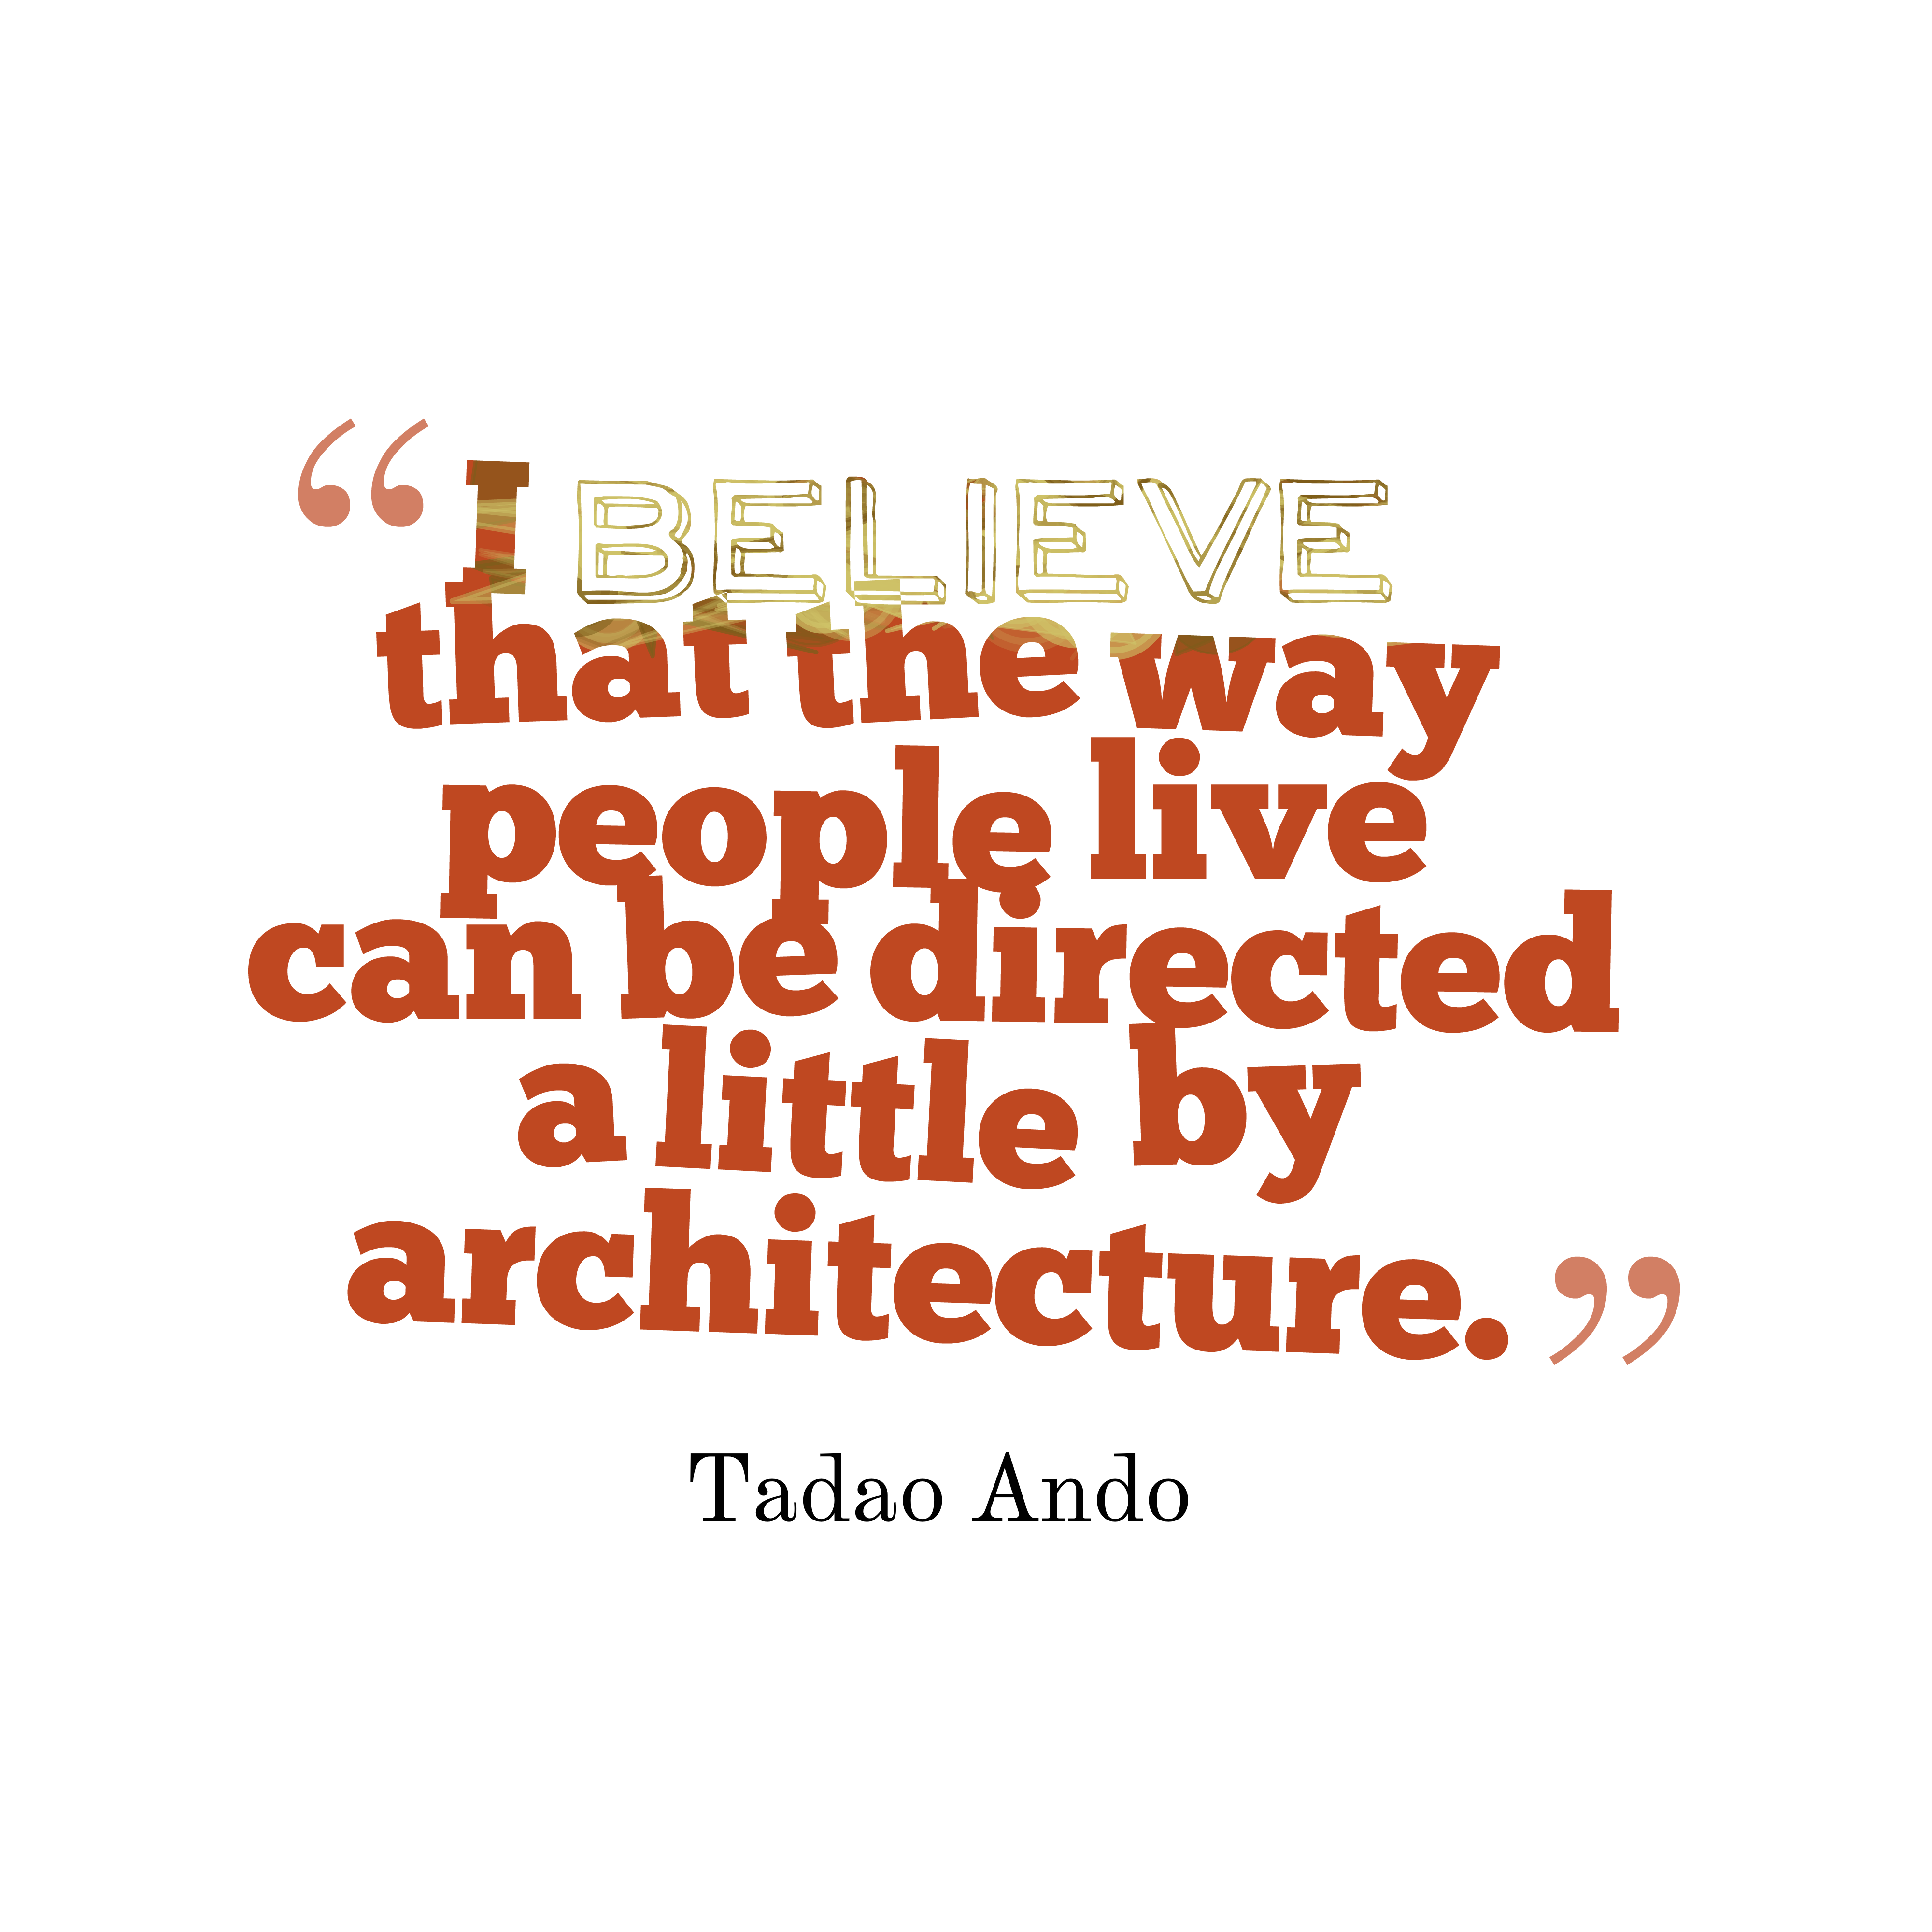 Quotes image of I believe that the way people live can be directed a little by architecture.